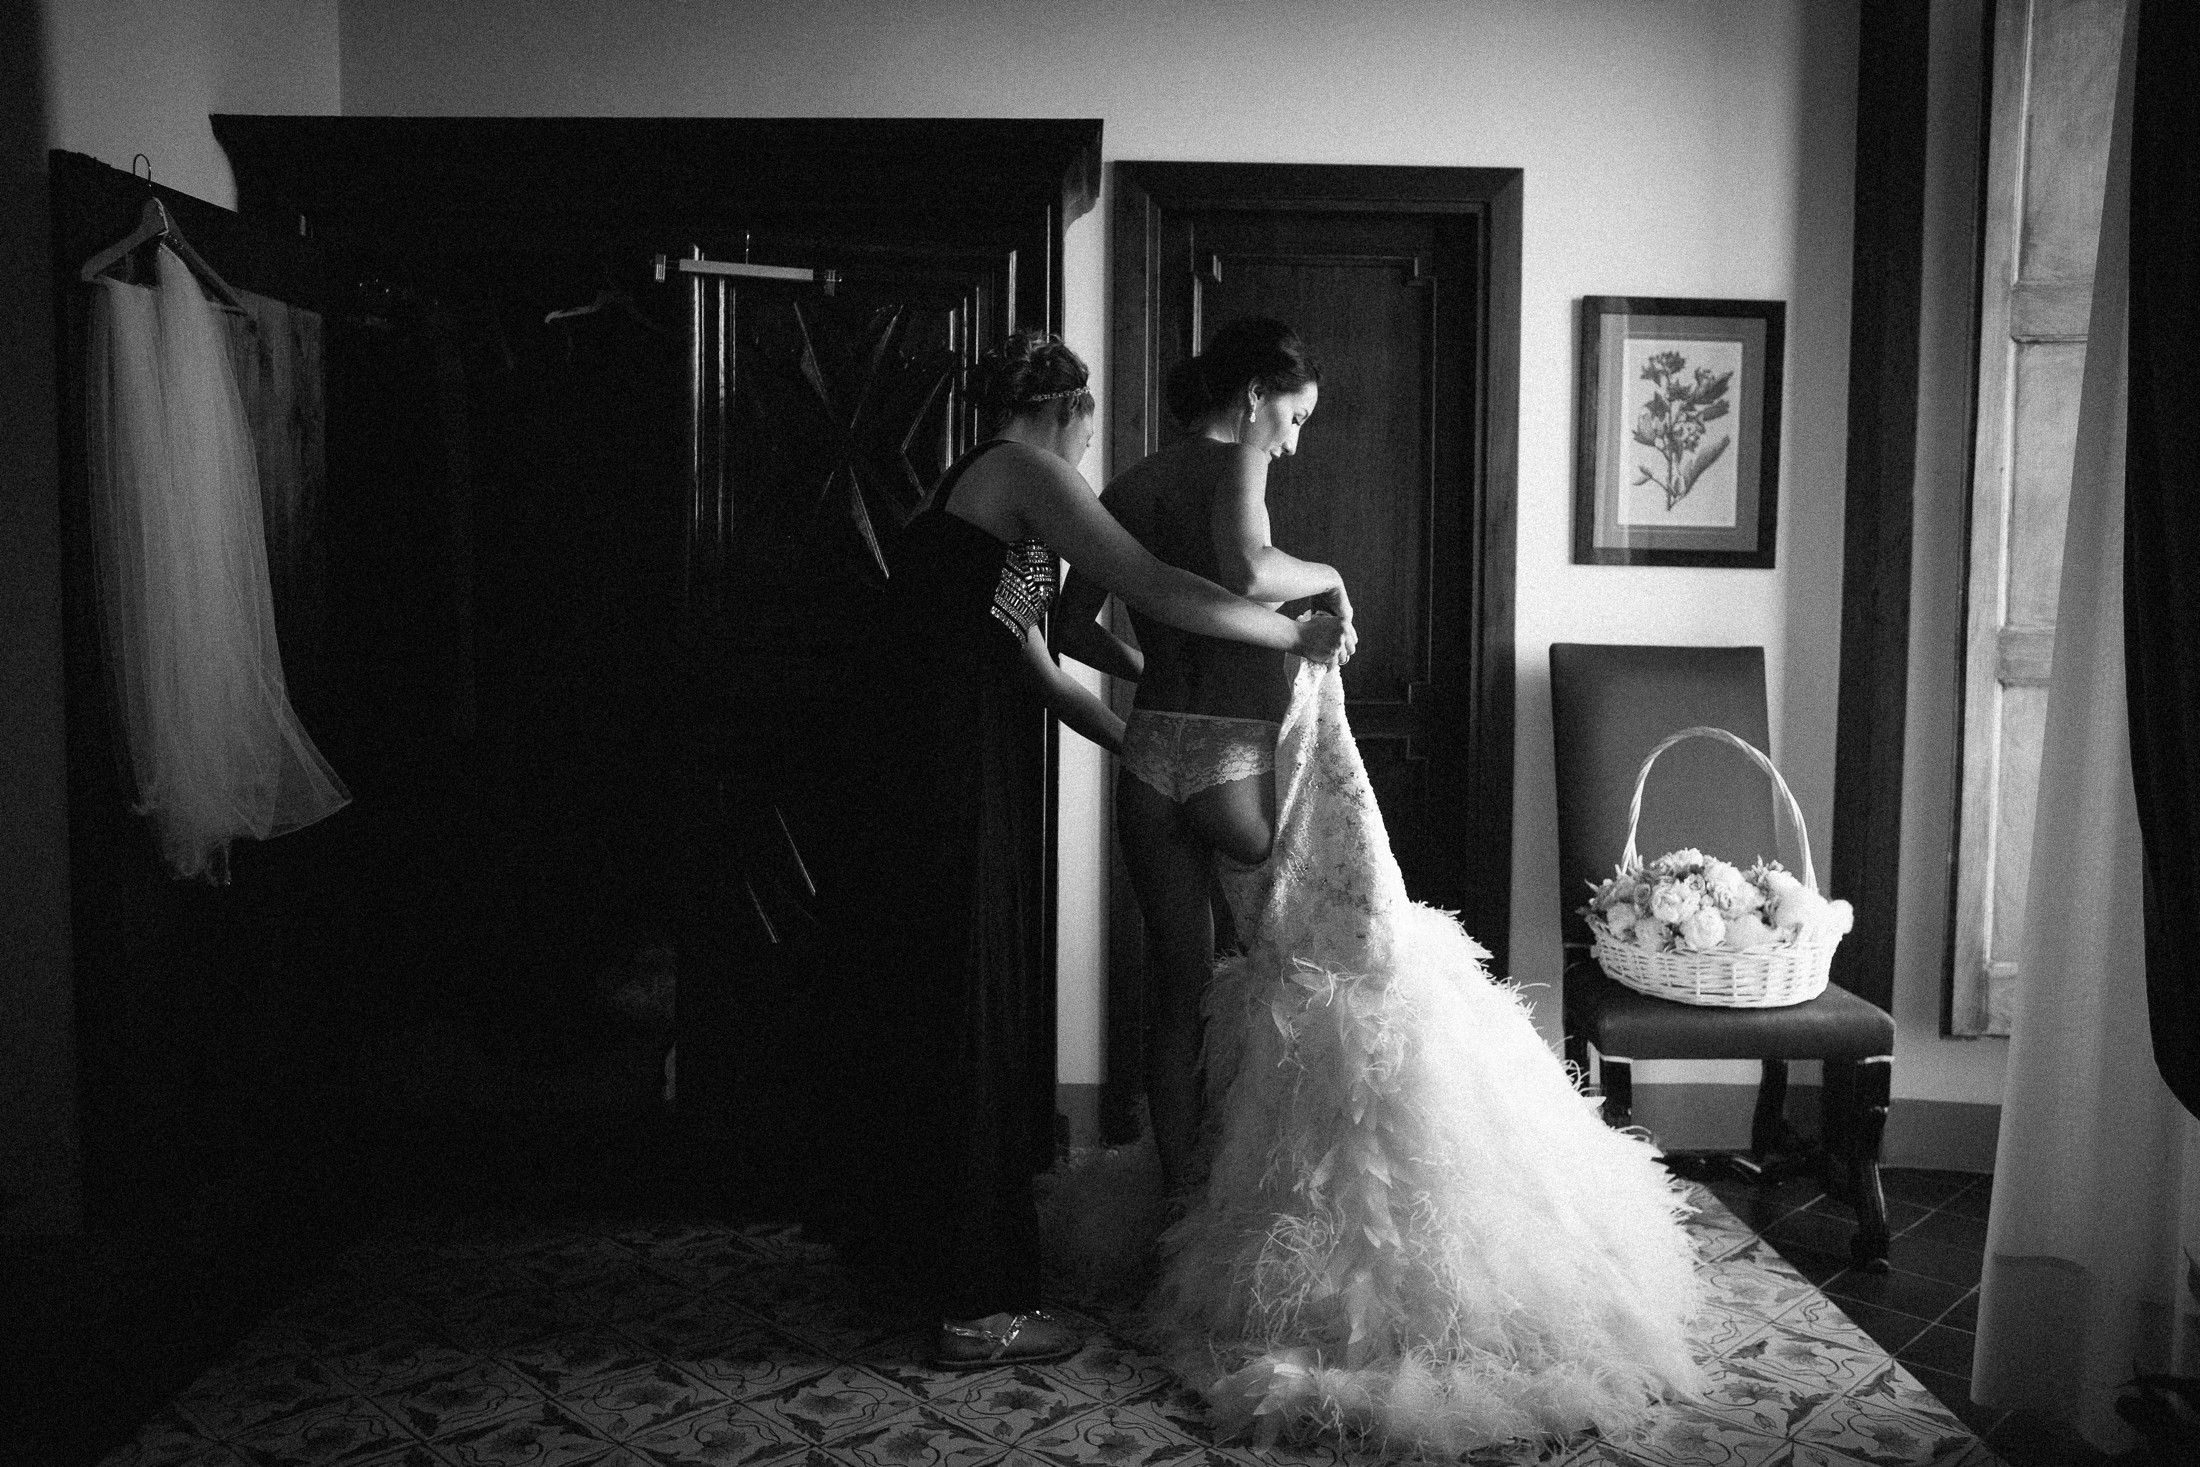 the bride wearing her wedding dress